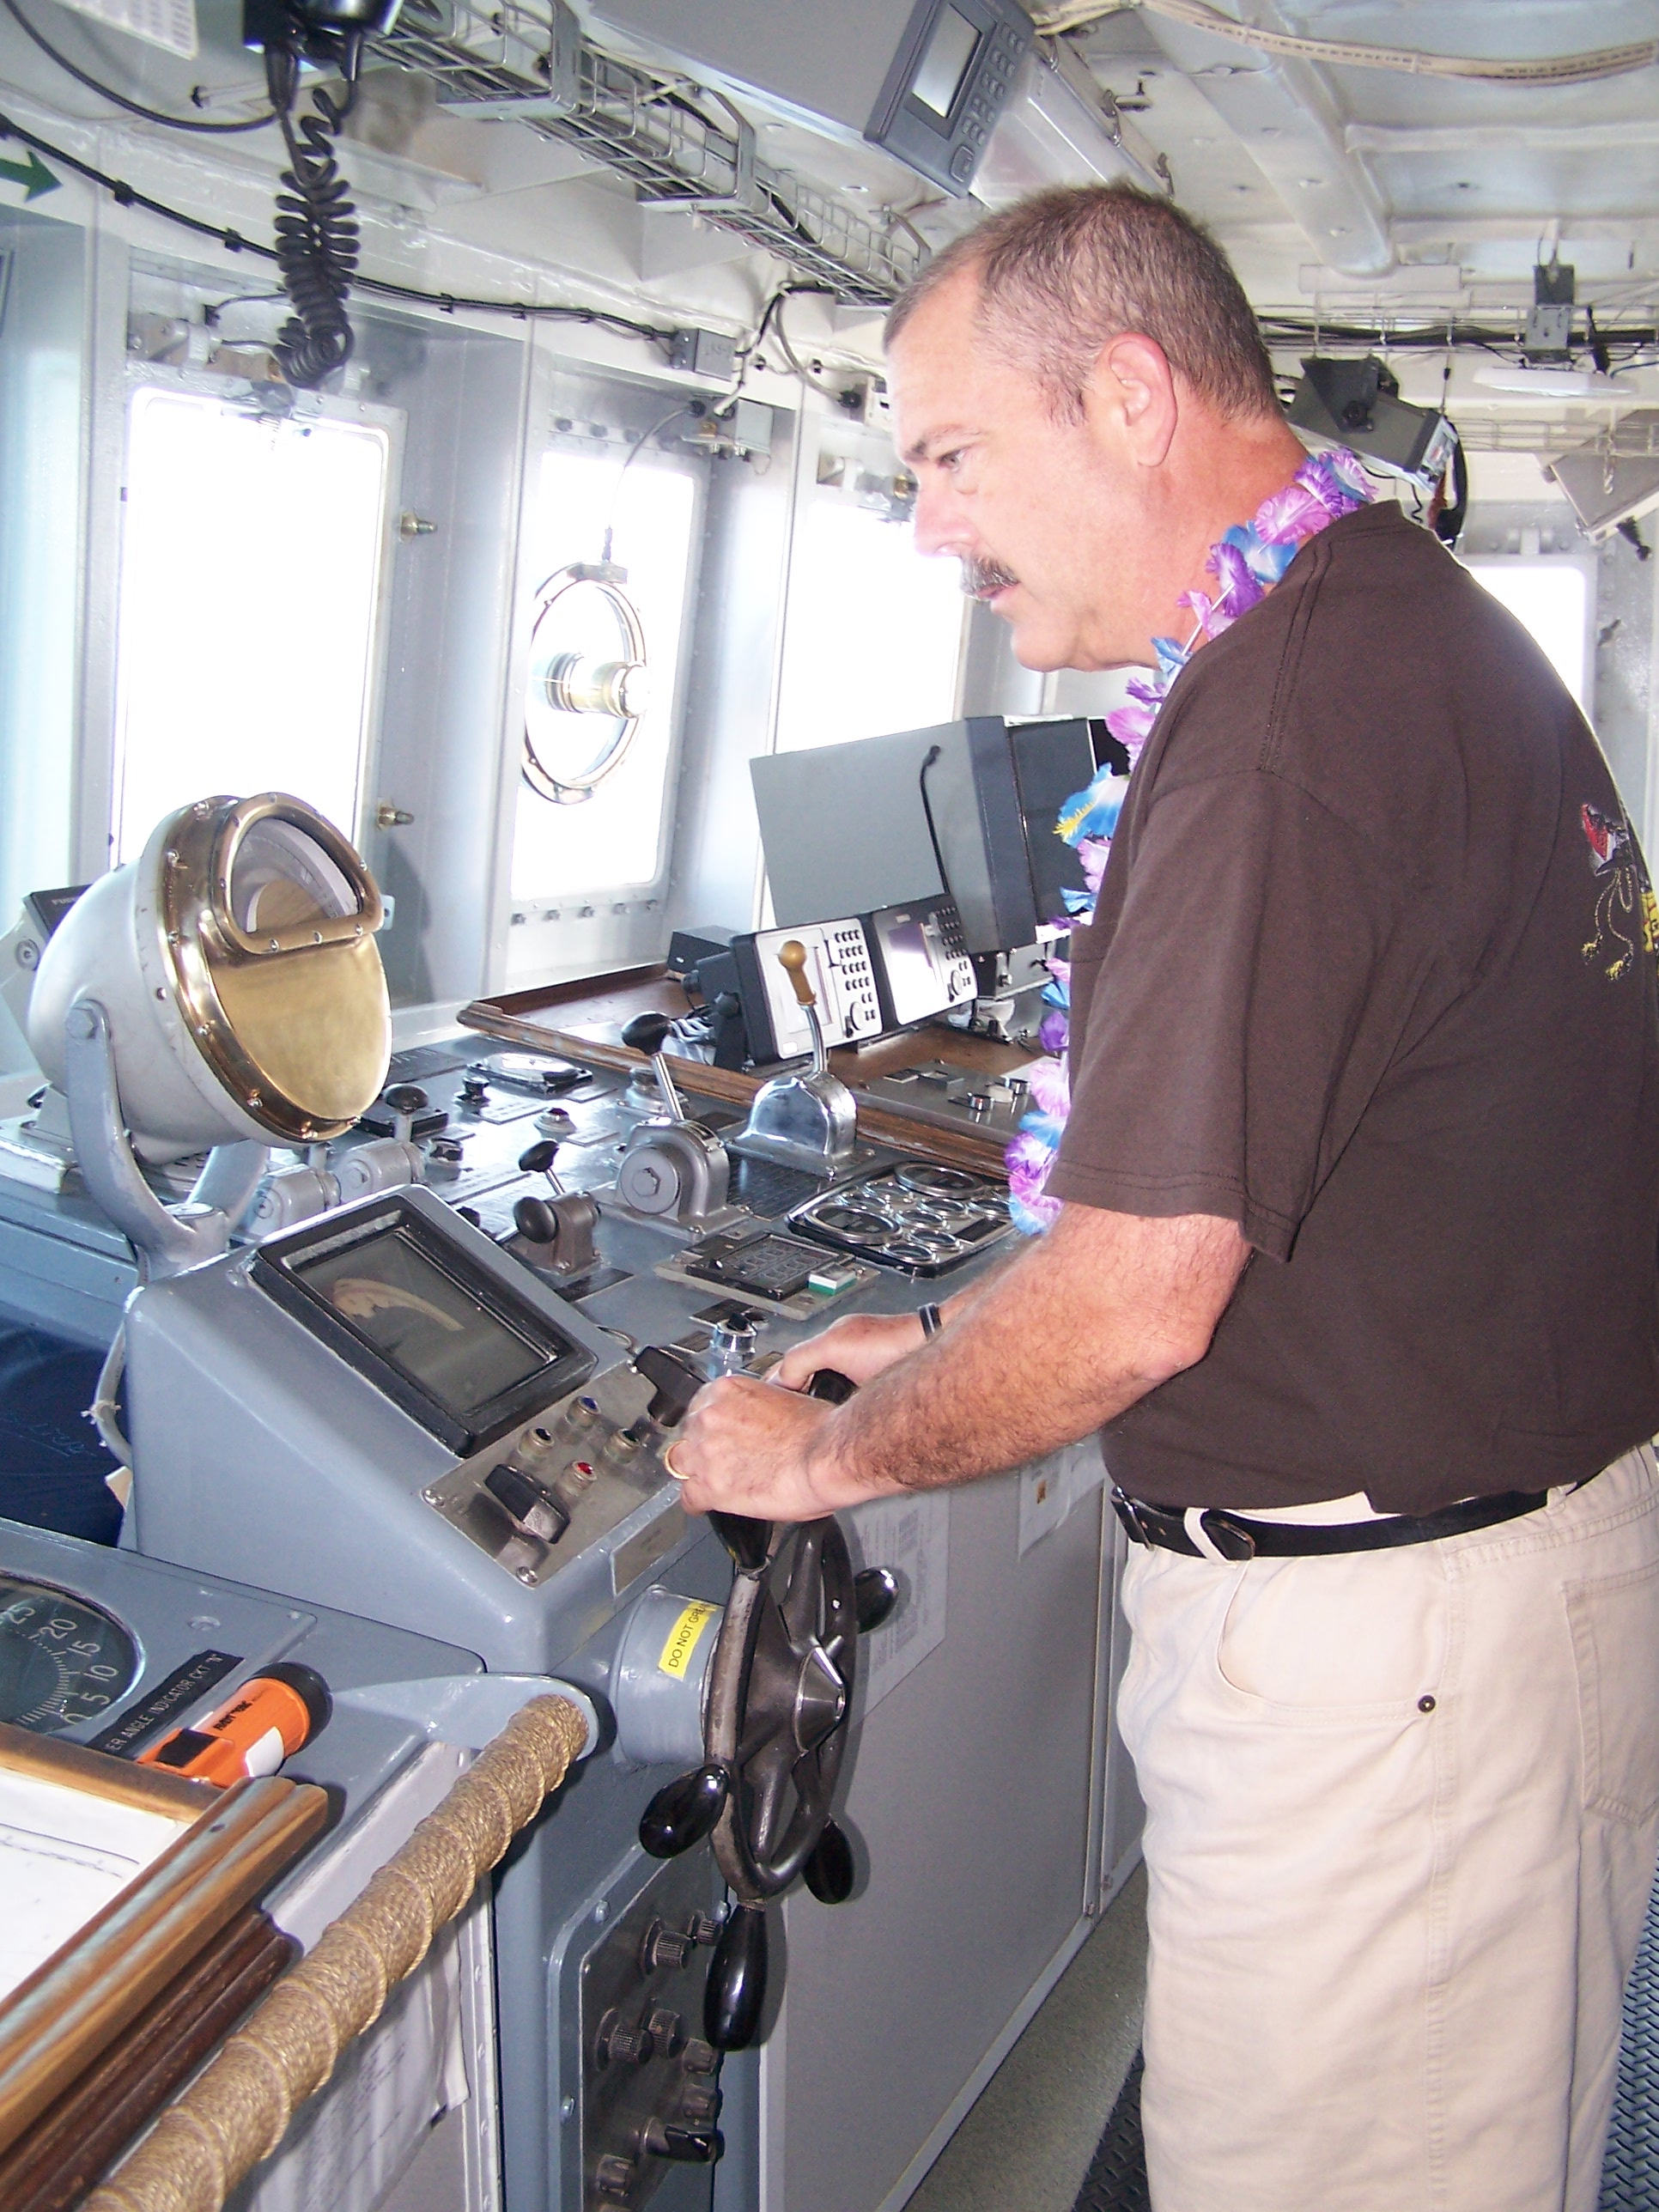 Ship Tour Noaa Teacher At Sea Blog Way Switch Diagram Power To Light Galleryhipcom The Hippest Here I Am Steering Oregon Ii Preparing Deploy High Flier For Another